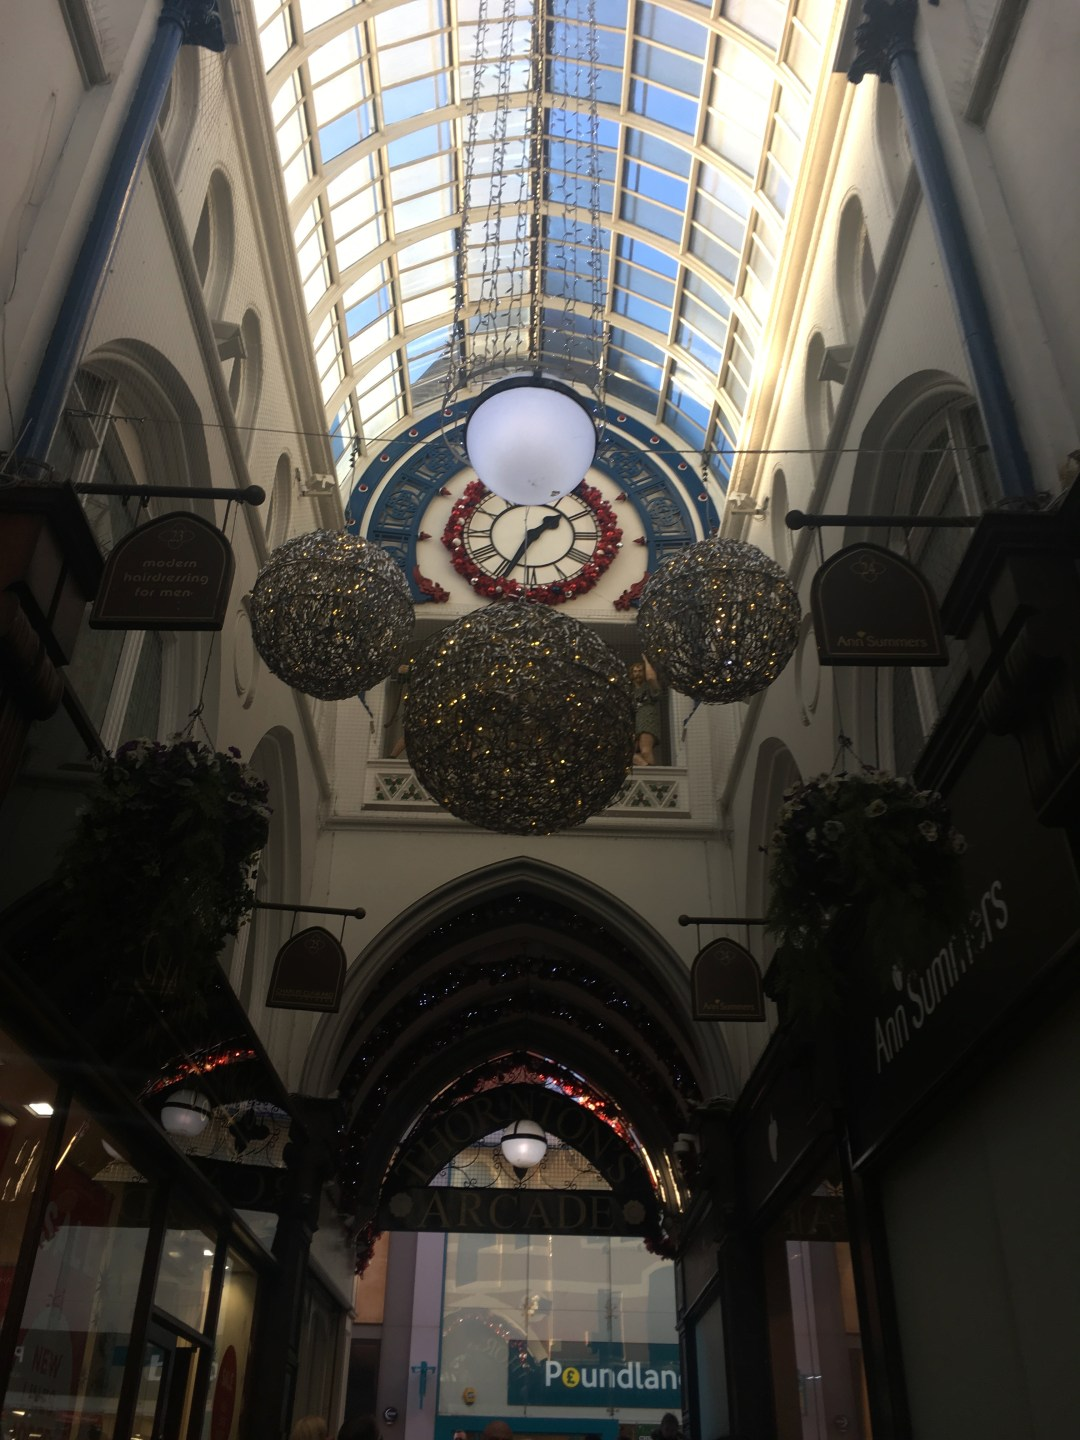 Clock at the entrance inside shopping arcade in Leeds